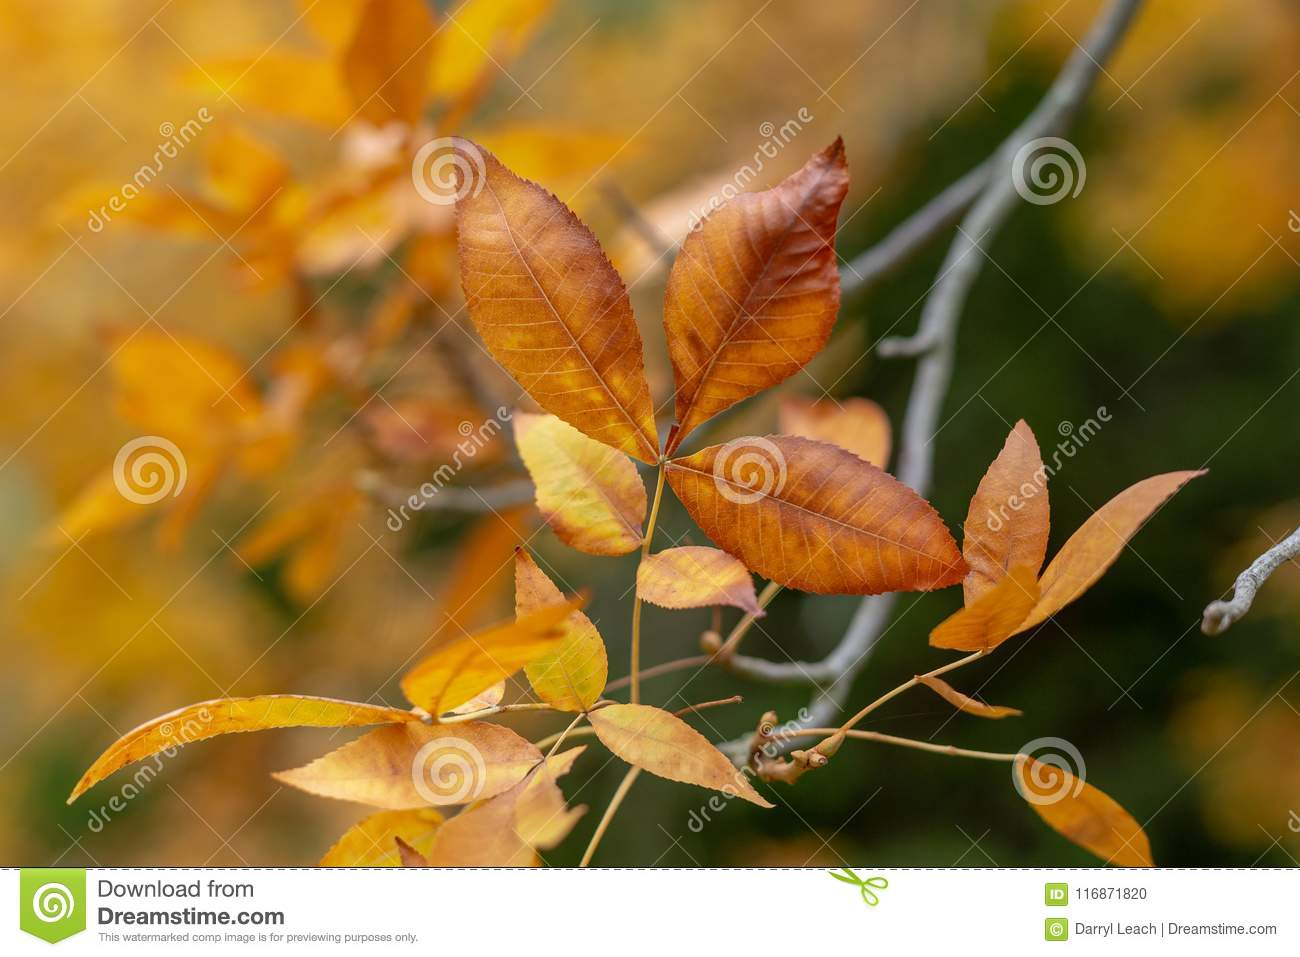 Orange Autumn leaves with blurred background at Mount lofty south australia on 17th May 2018